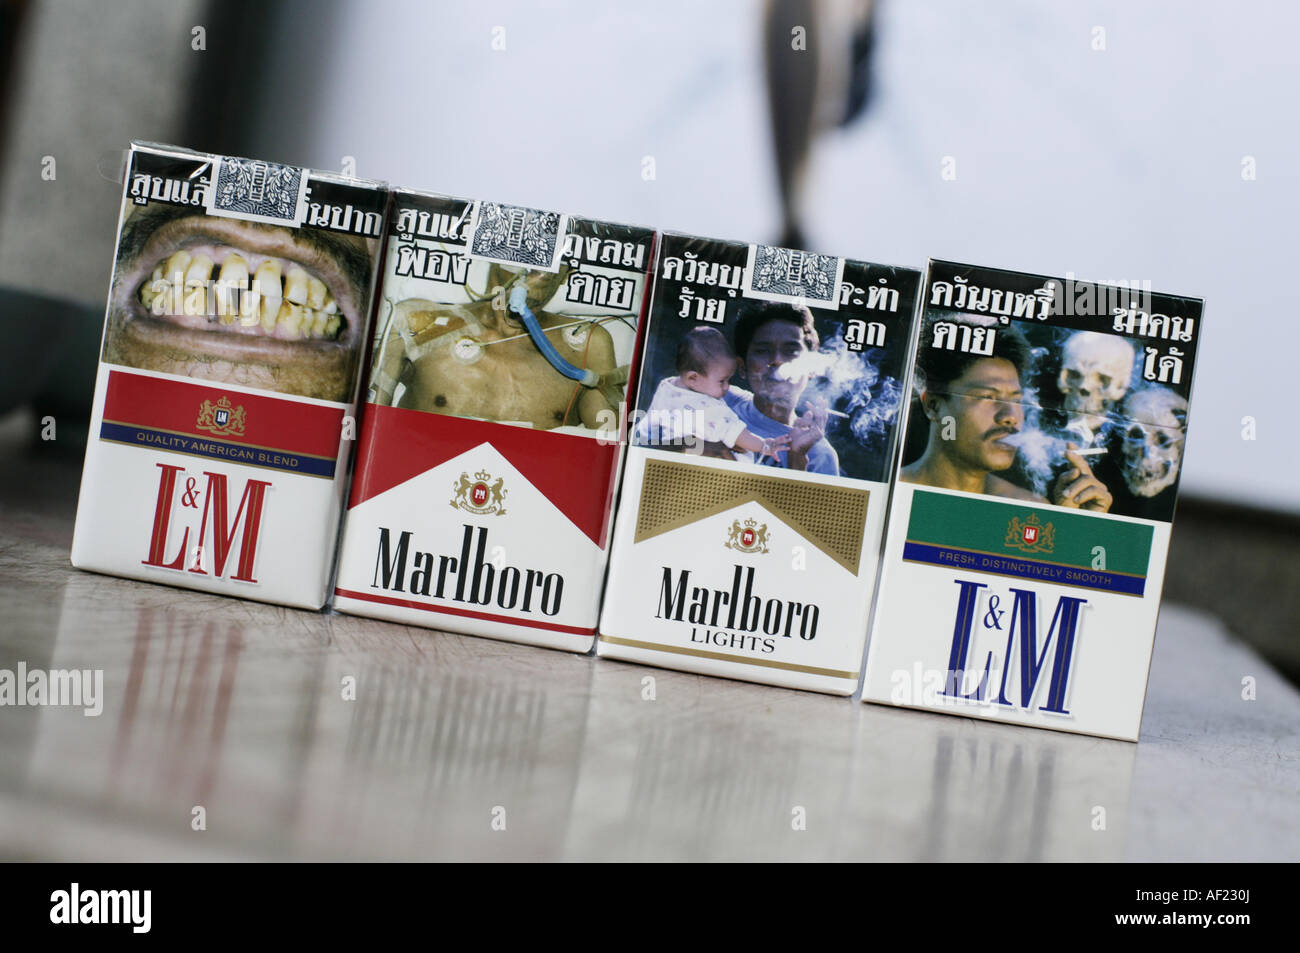 packages of  cigarettes with pictures of dead people, ill, cancer Stock Photo